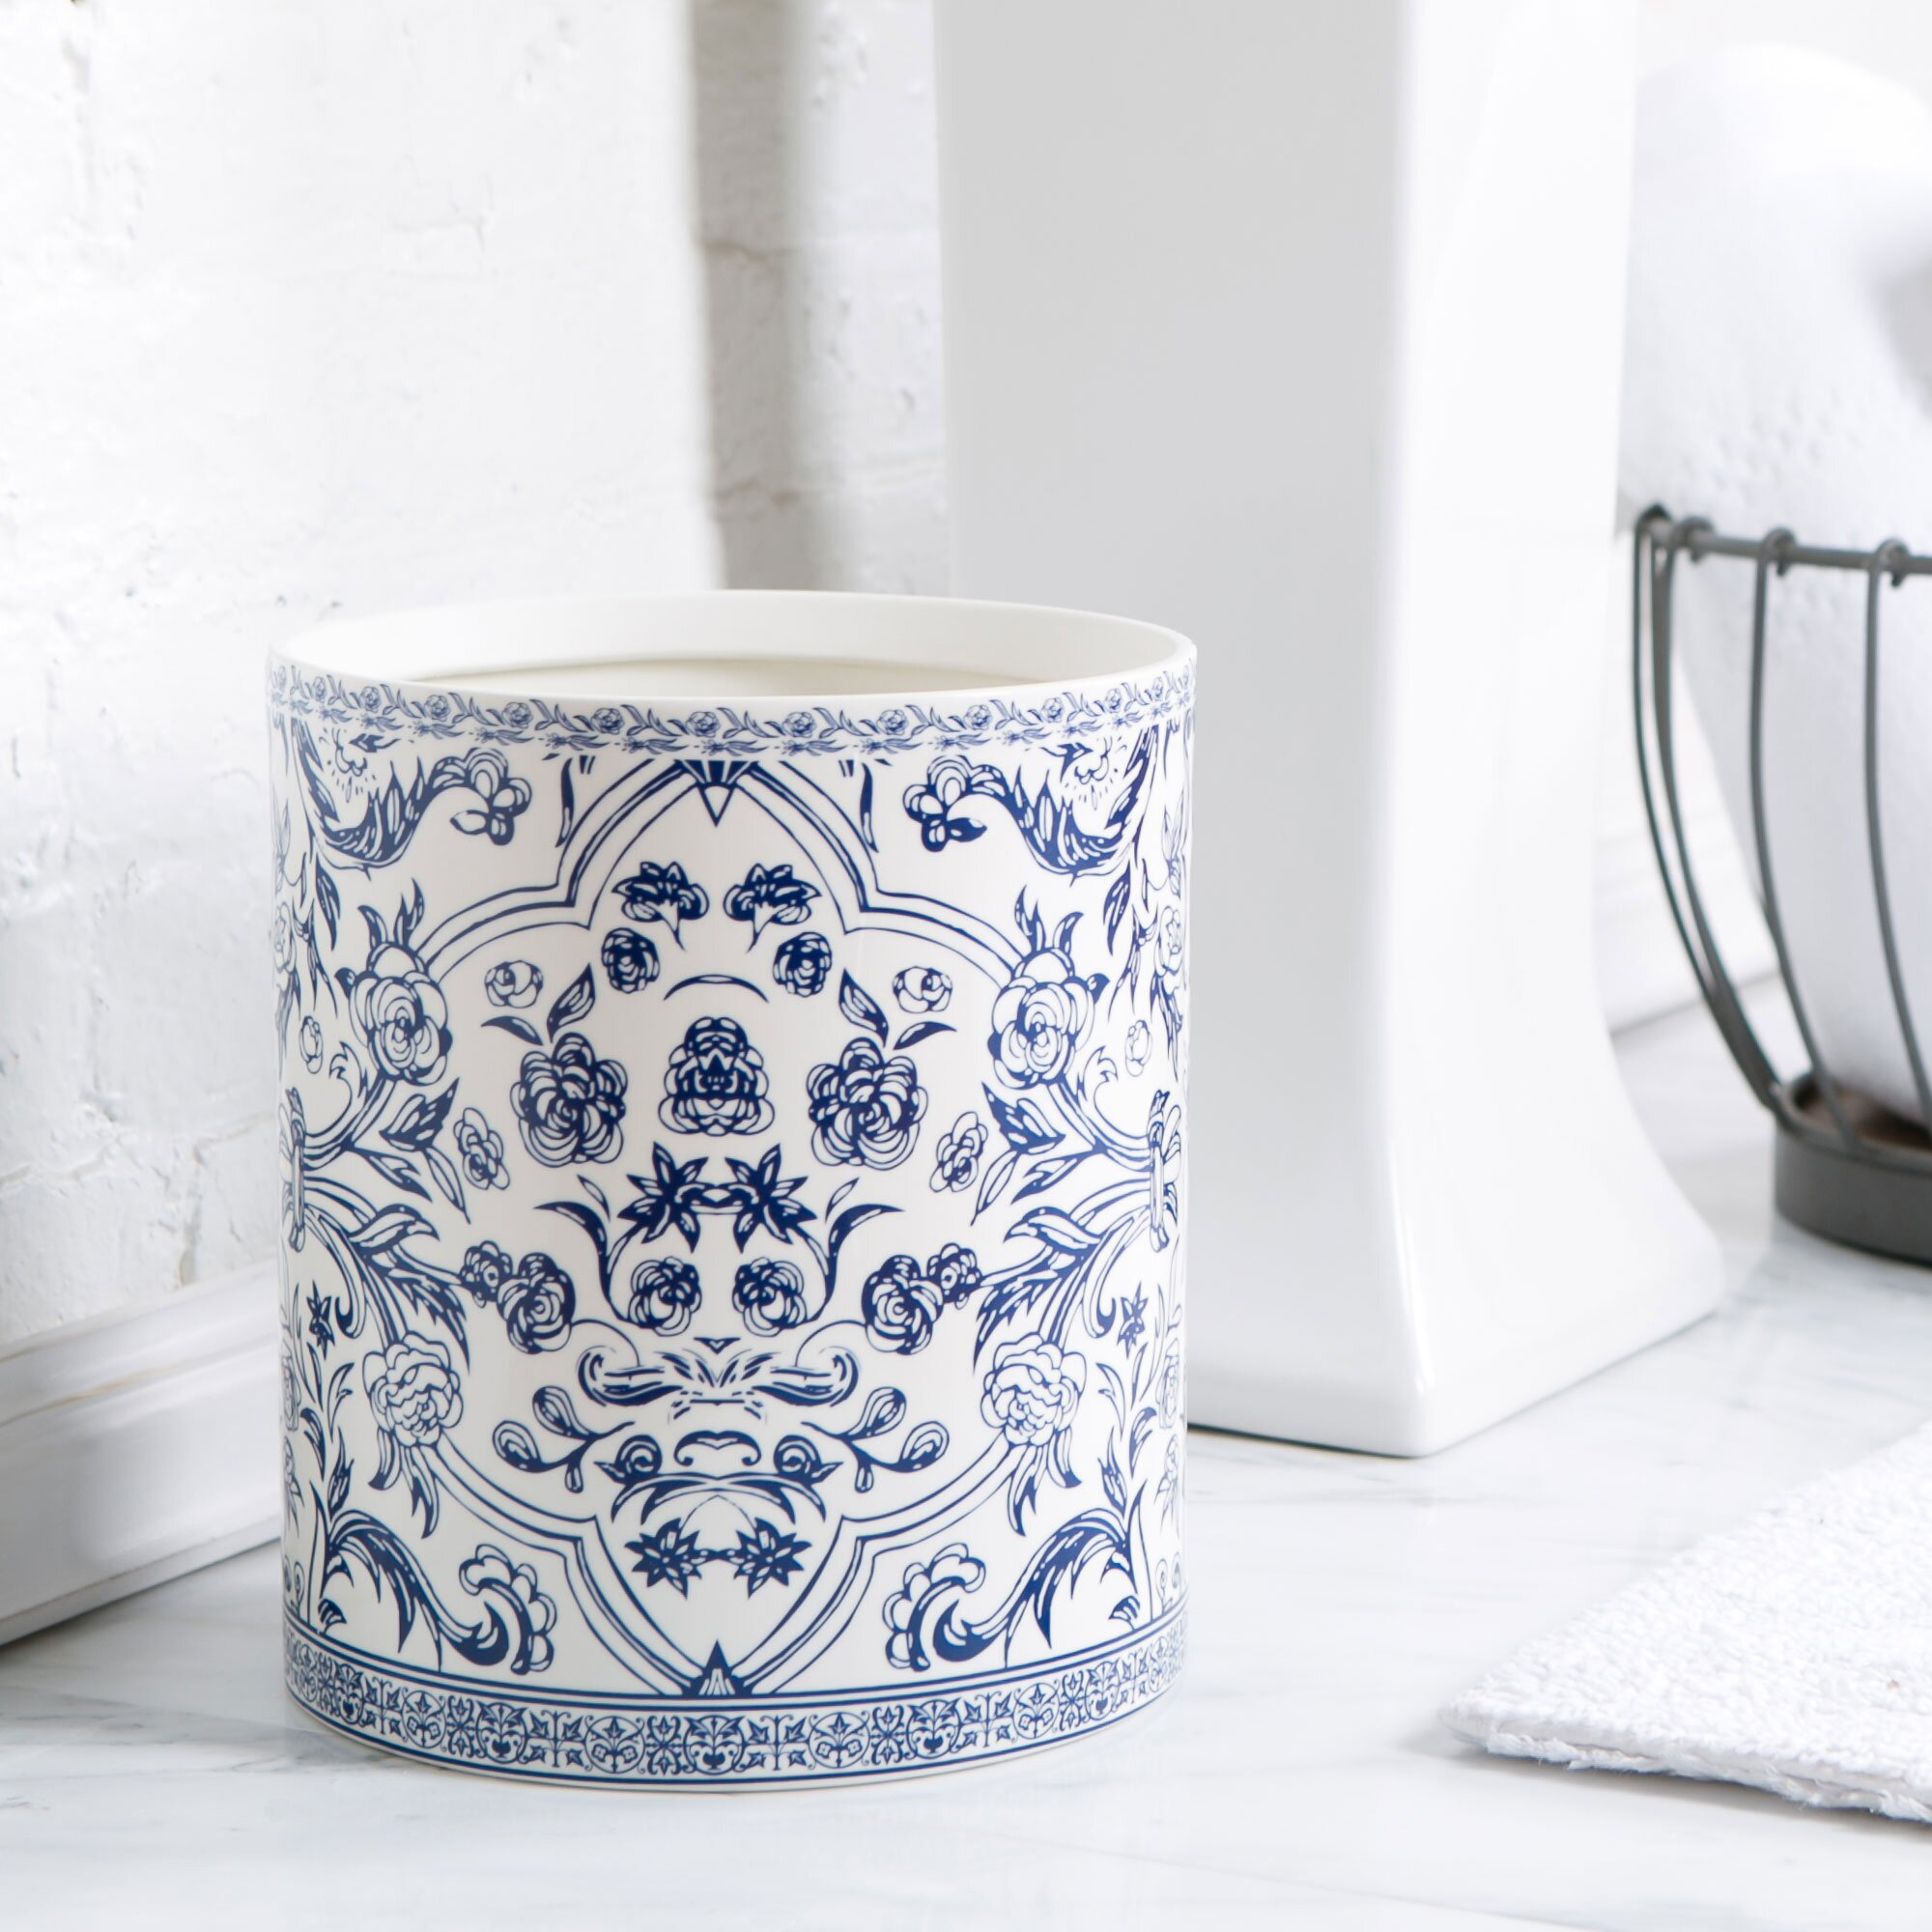 Blue and white bathroom accessories - Porcelain Bathroom Accessories Blue White Waste Basket